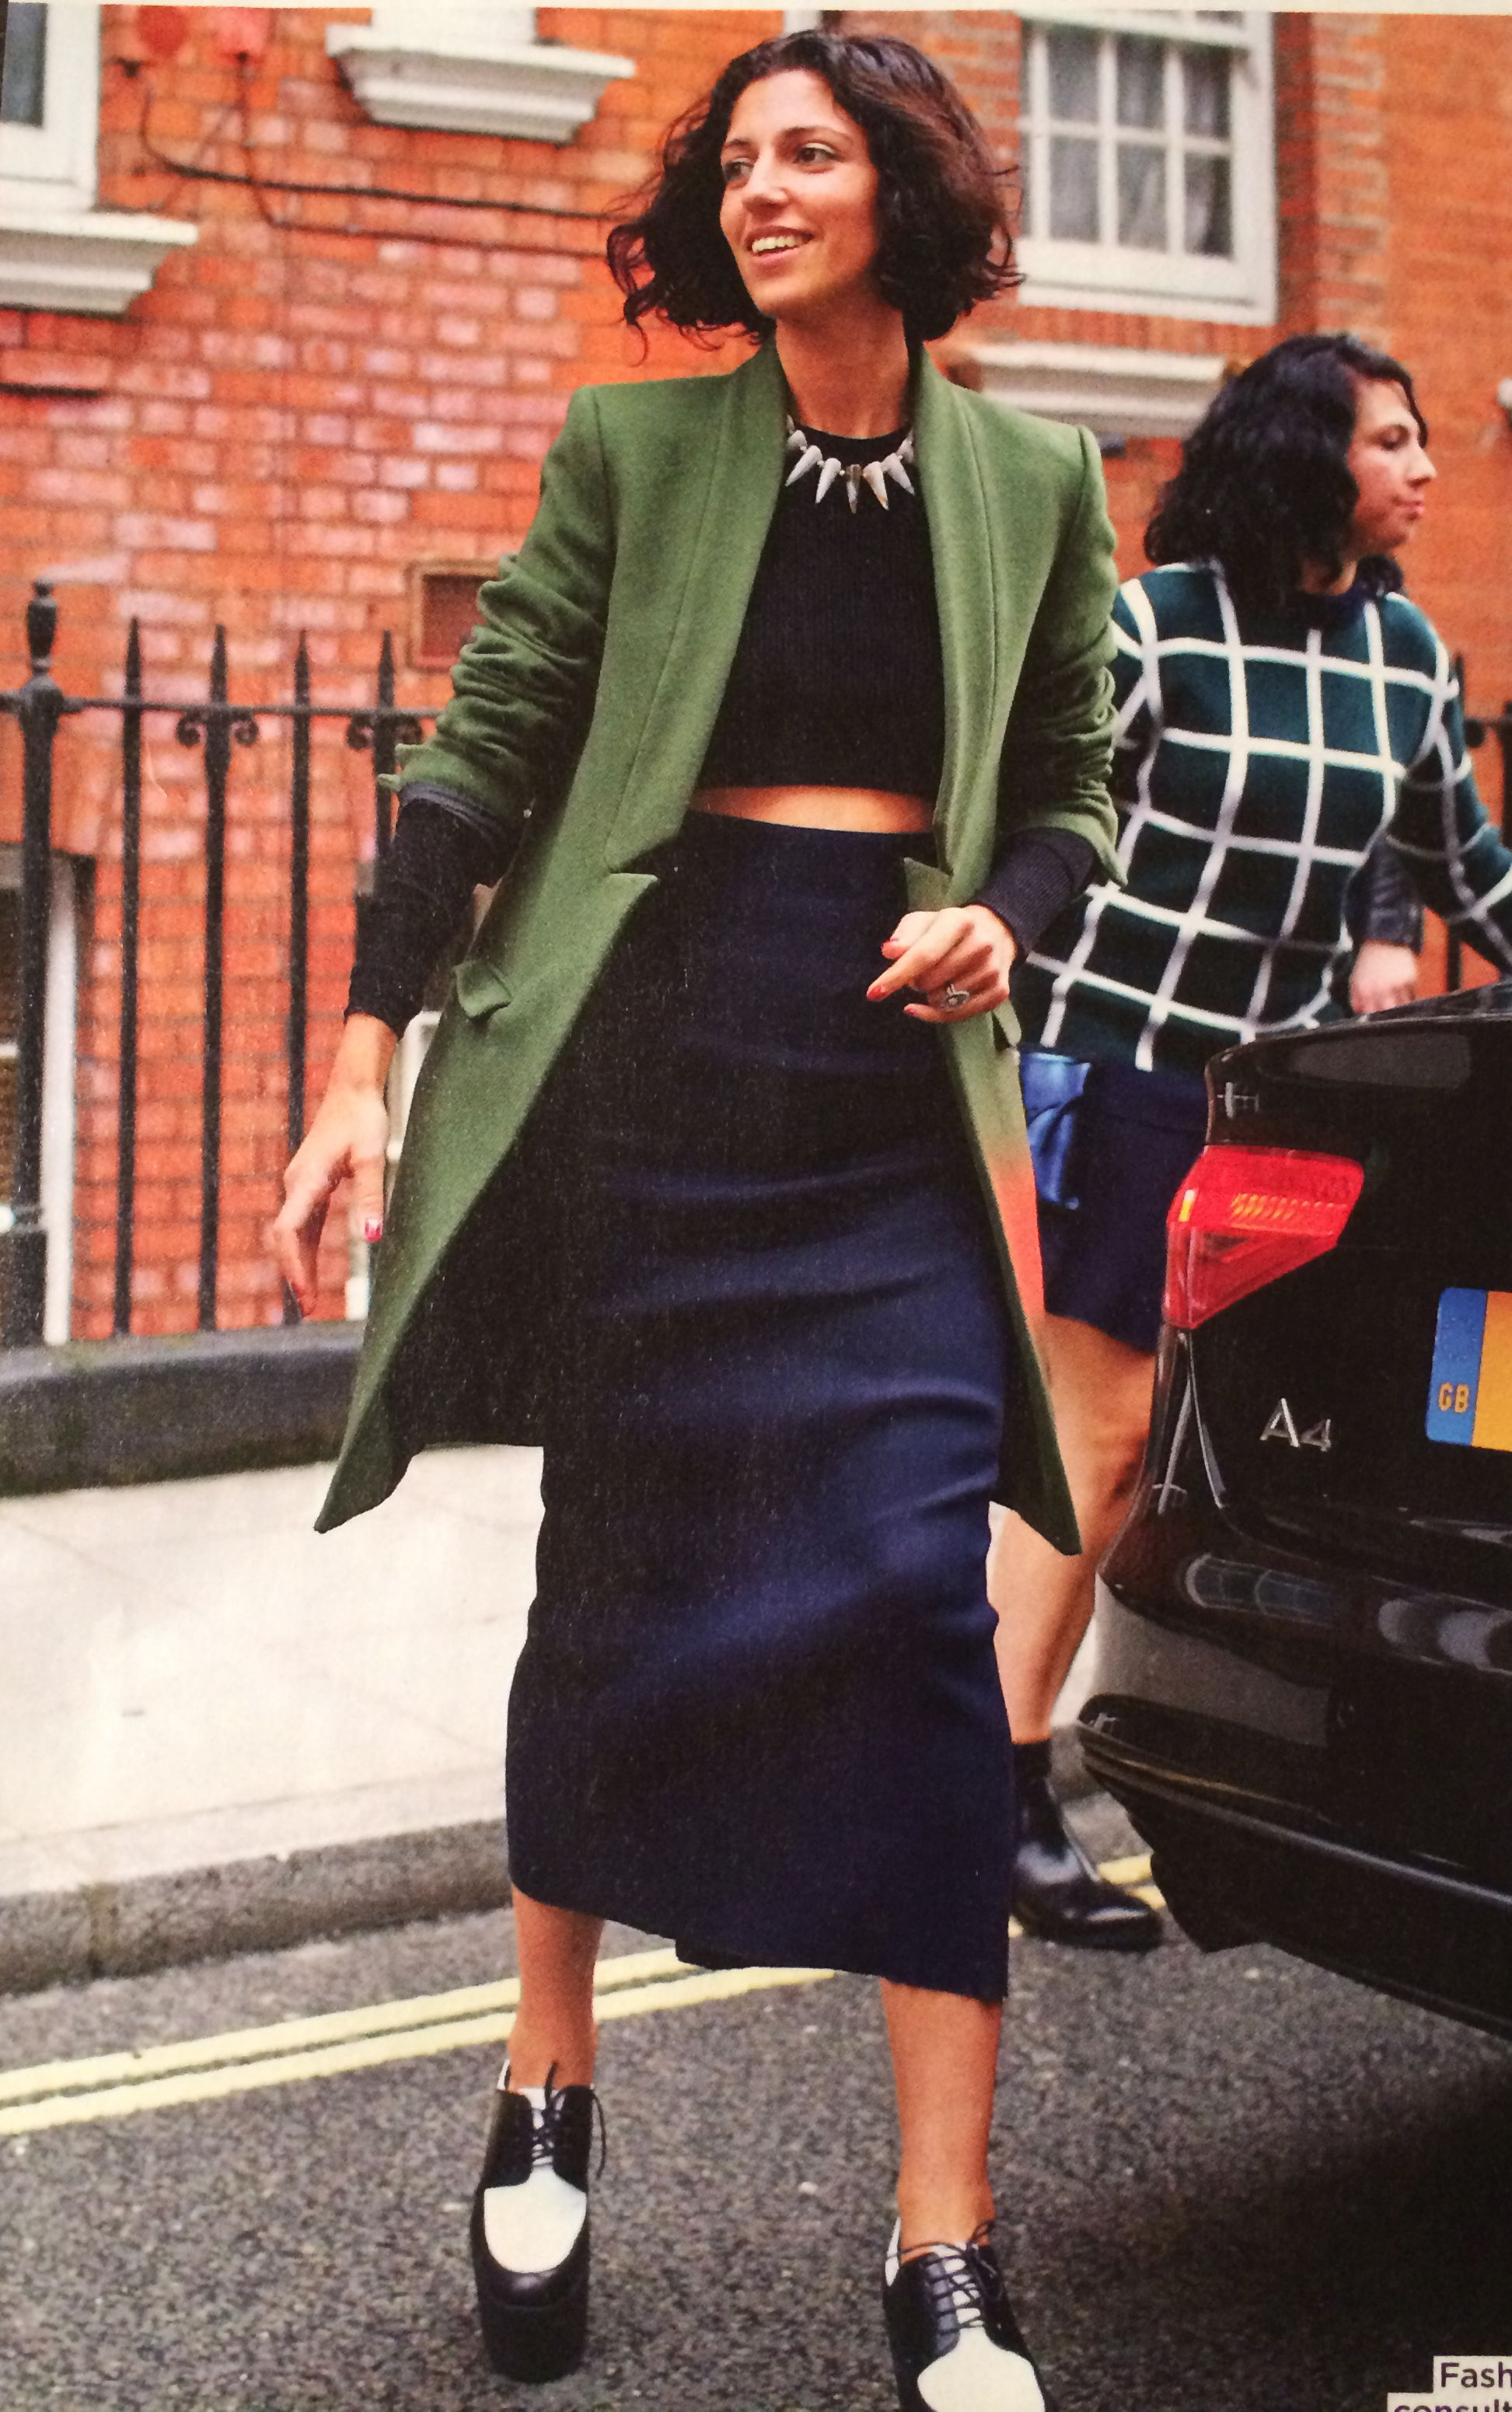 Obsessed With This Look Fashion Consultant Yasmin Sewell Lucky Magazine Fashion Style Inspiration Style